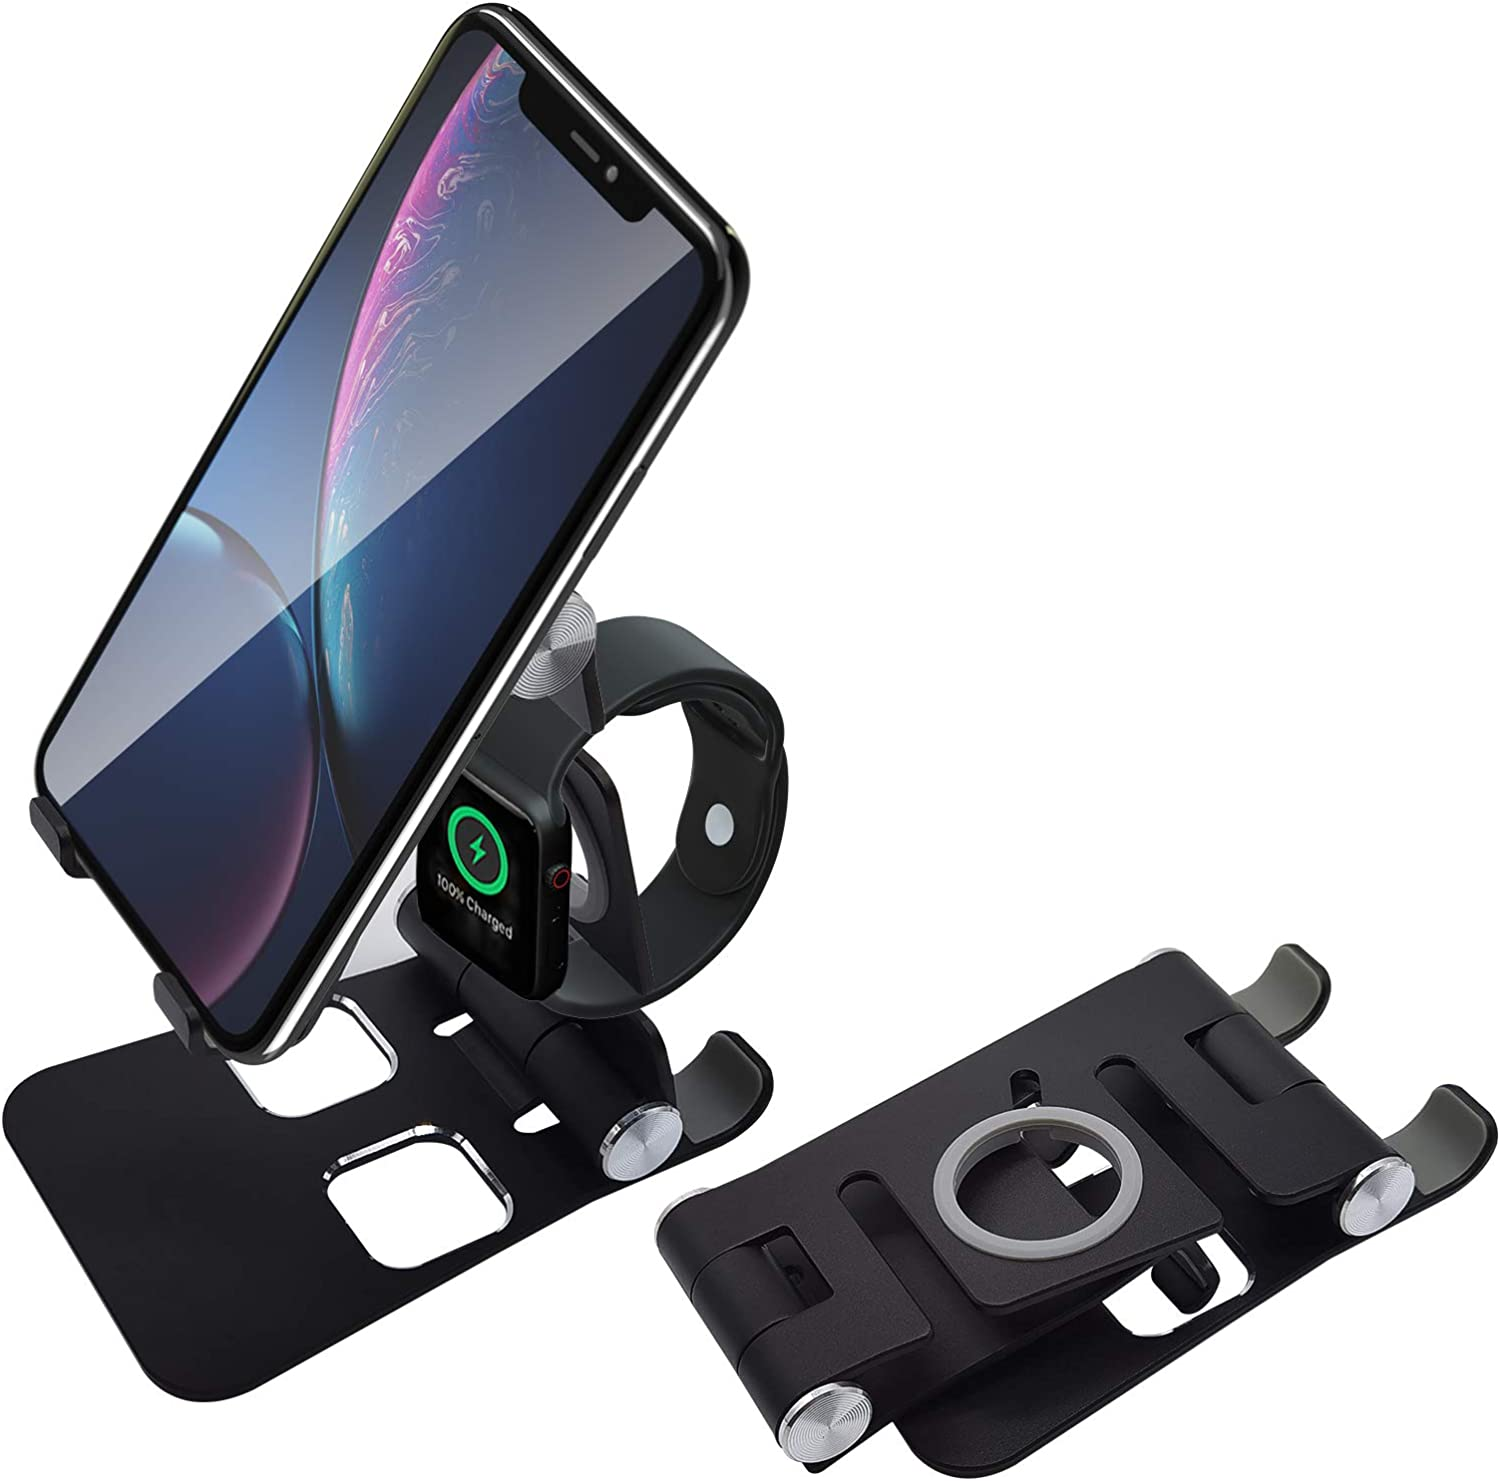 3-in-1Cell Phone Stand, Fully Foldable, desktop cell phone stand tablet stand, Adjustable Phone Holder Cradle Dock Compatible with Phone 11 Pro Xs Xs Max Xr X, Nintendo Switch, Tablets, Apple Watch SE